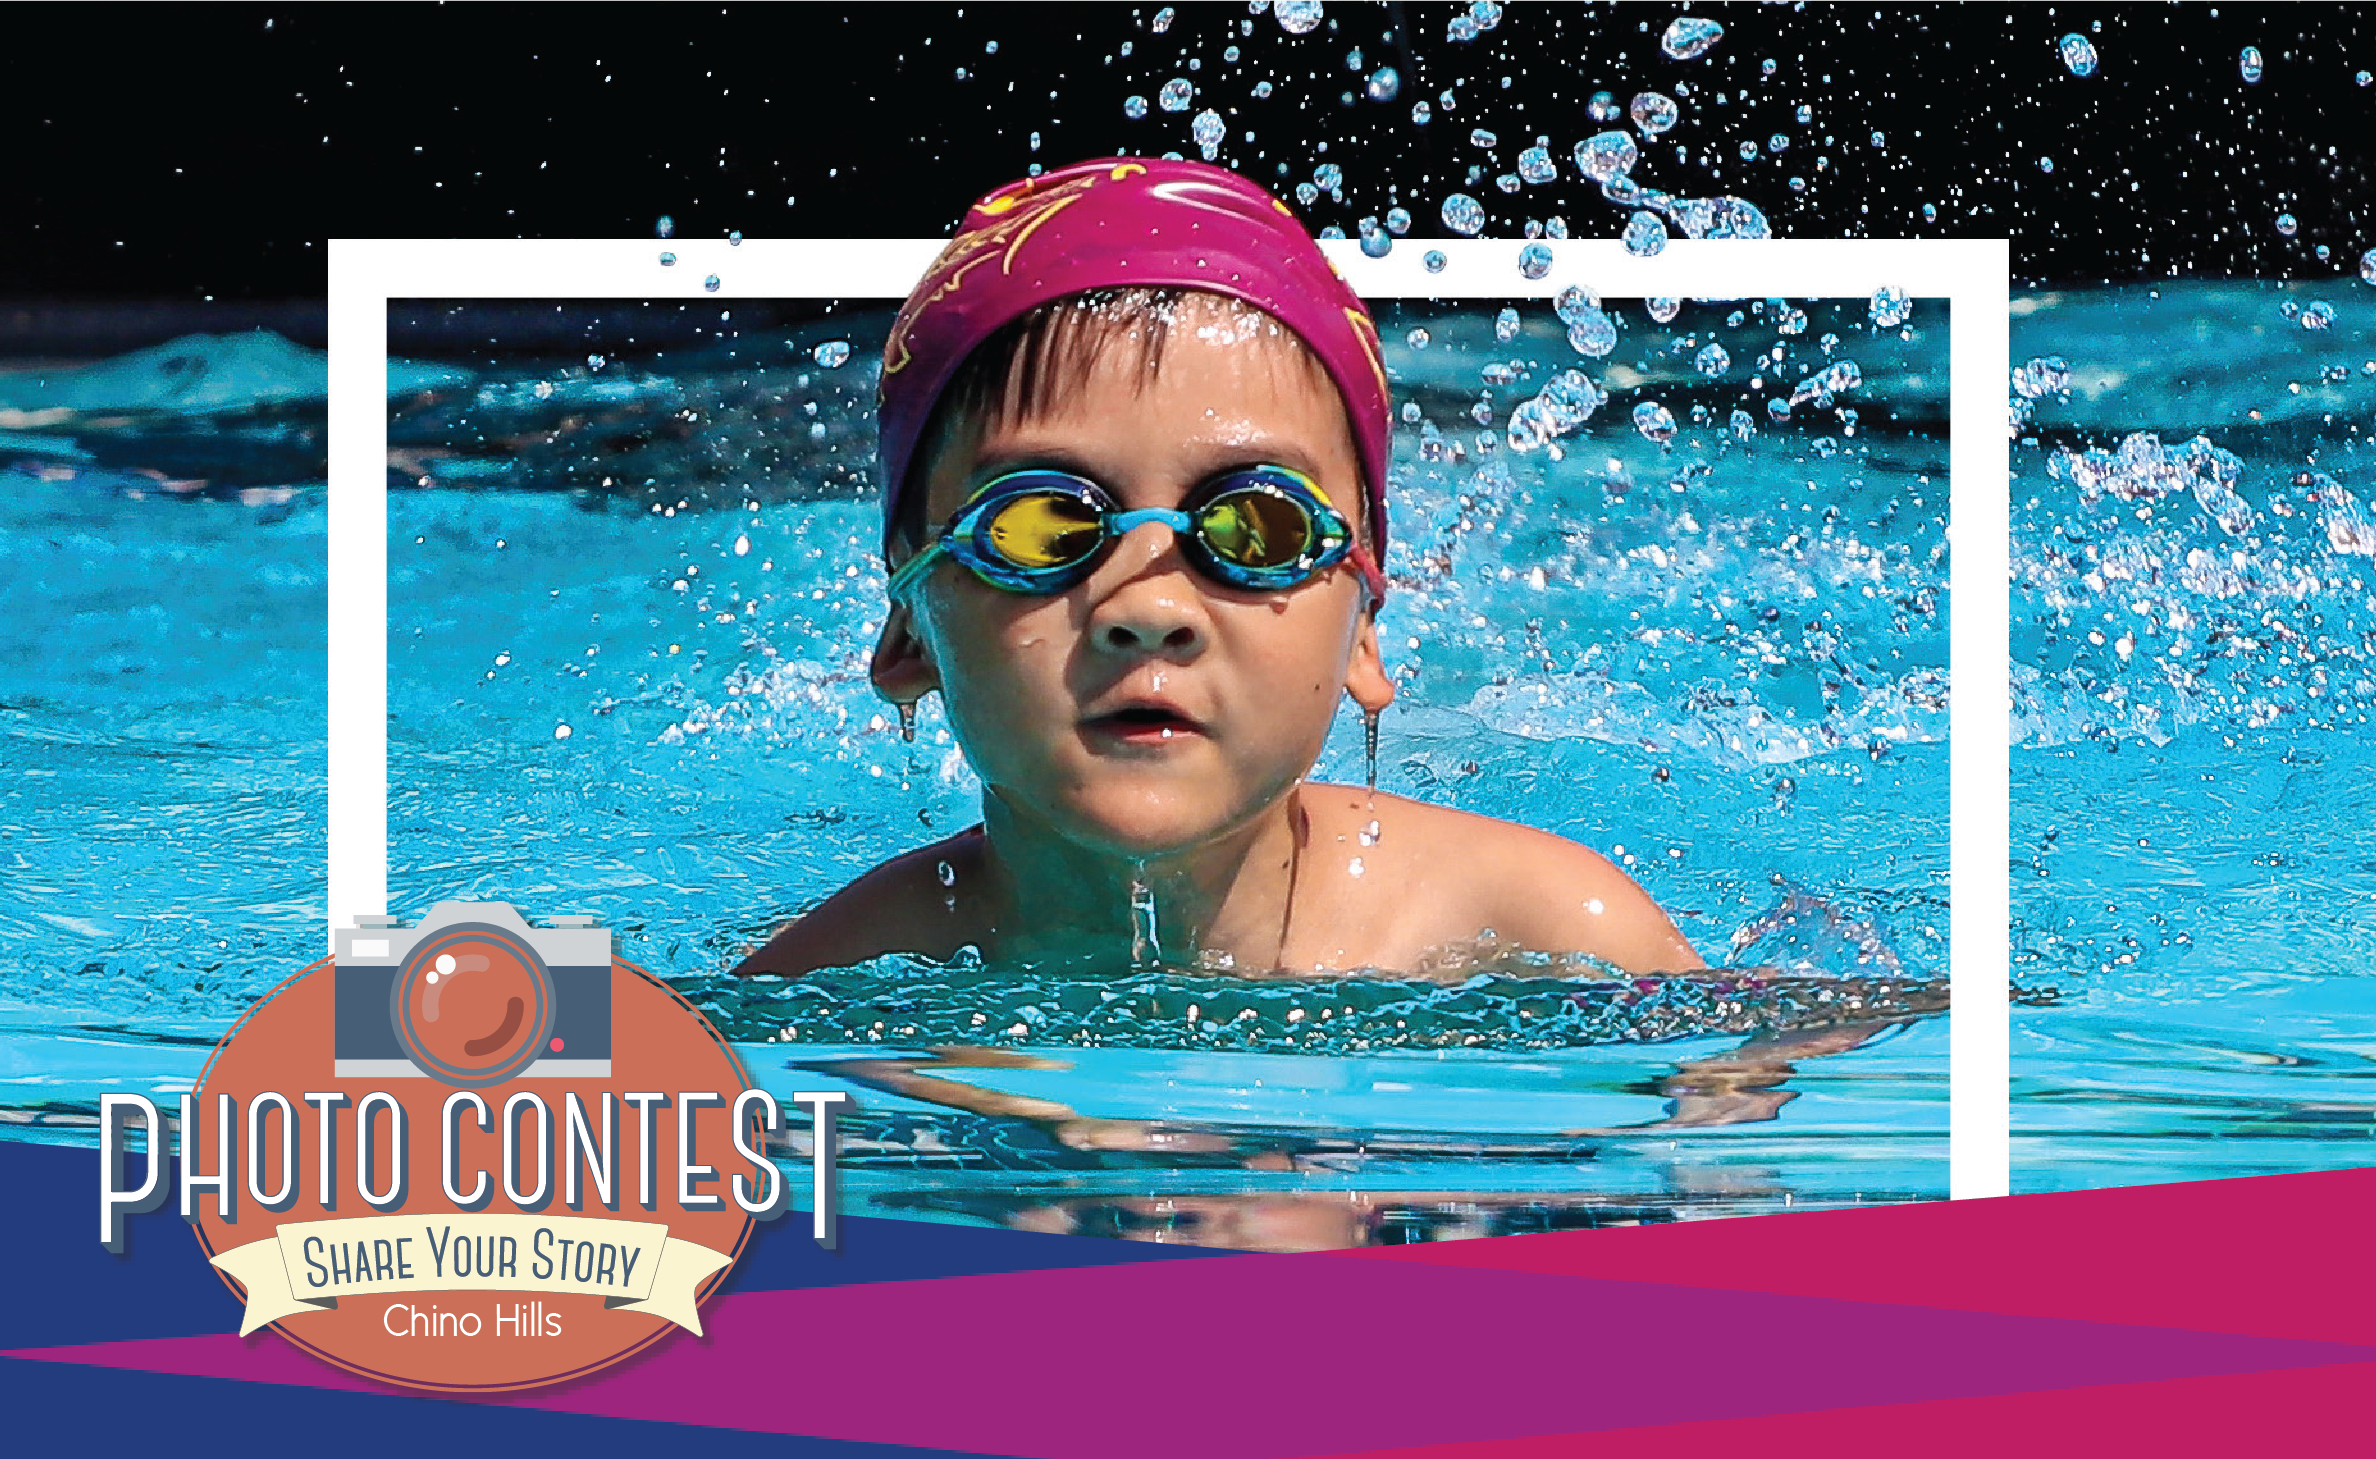 Photo Contest 2019 Grand Prize Winner of Boy with Swim Cap and Goggles in Pool